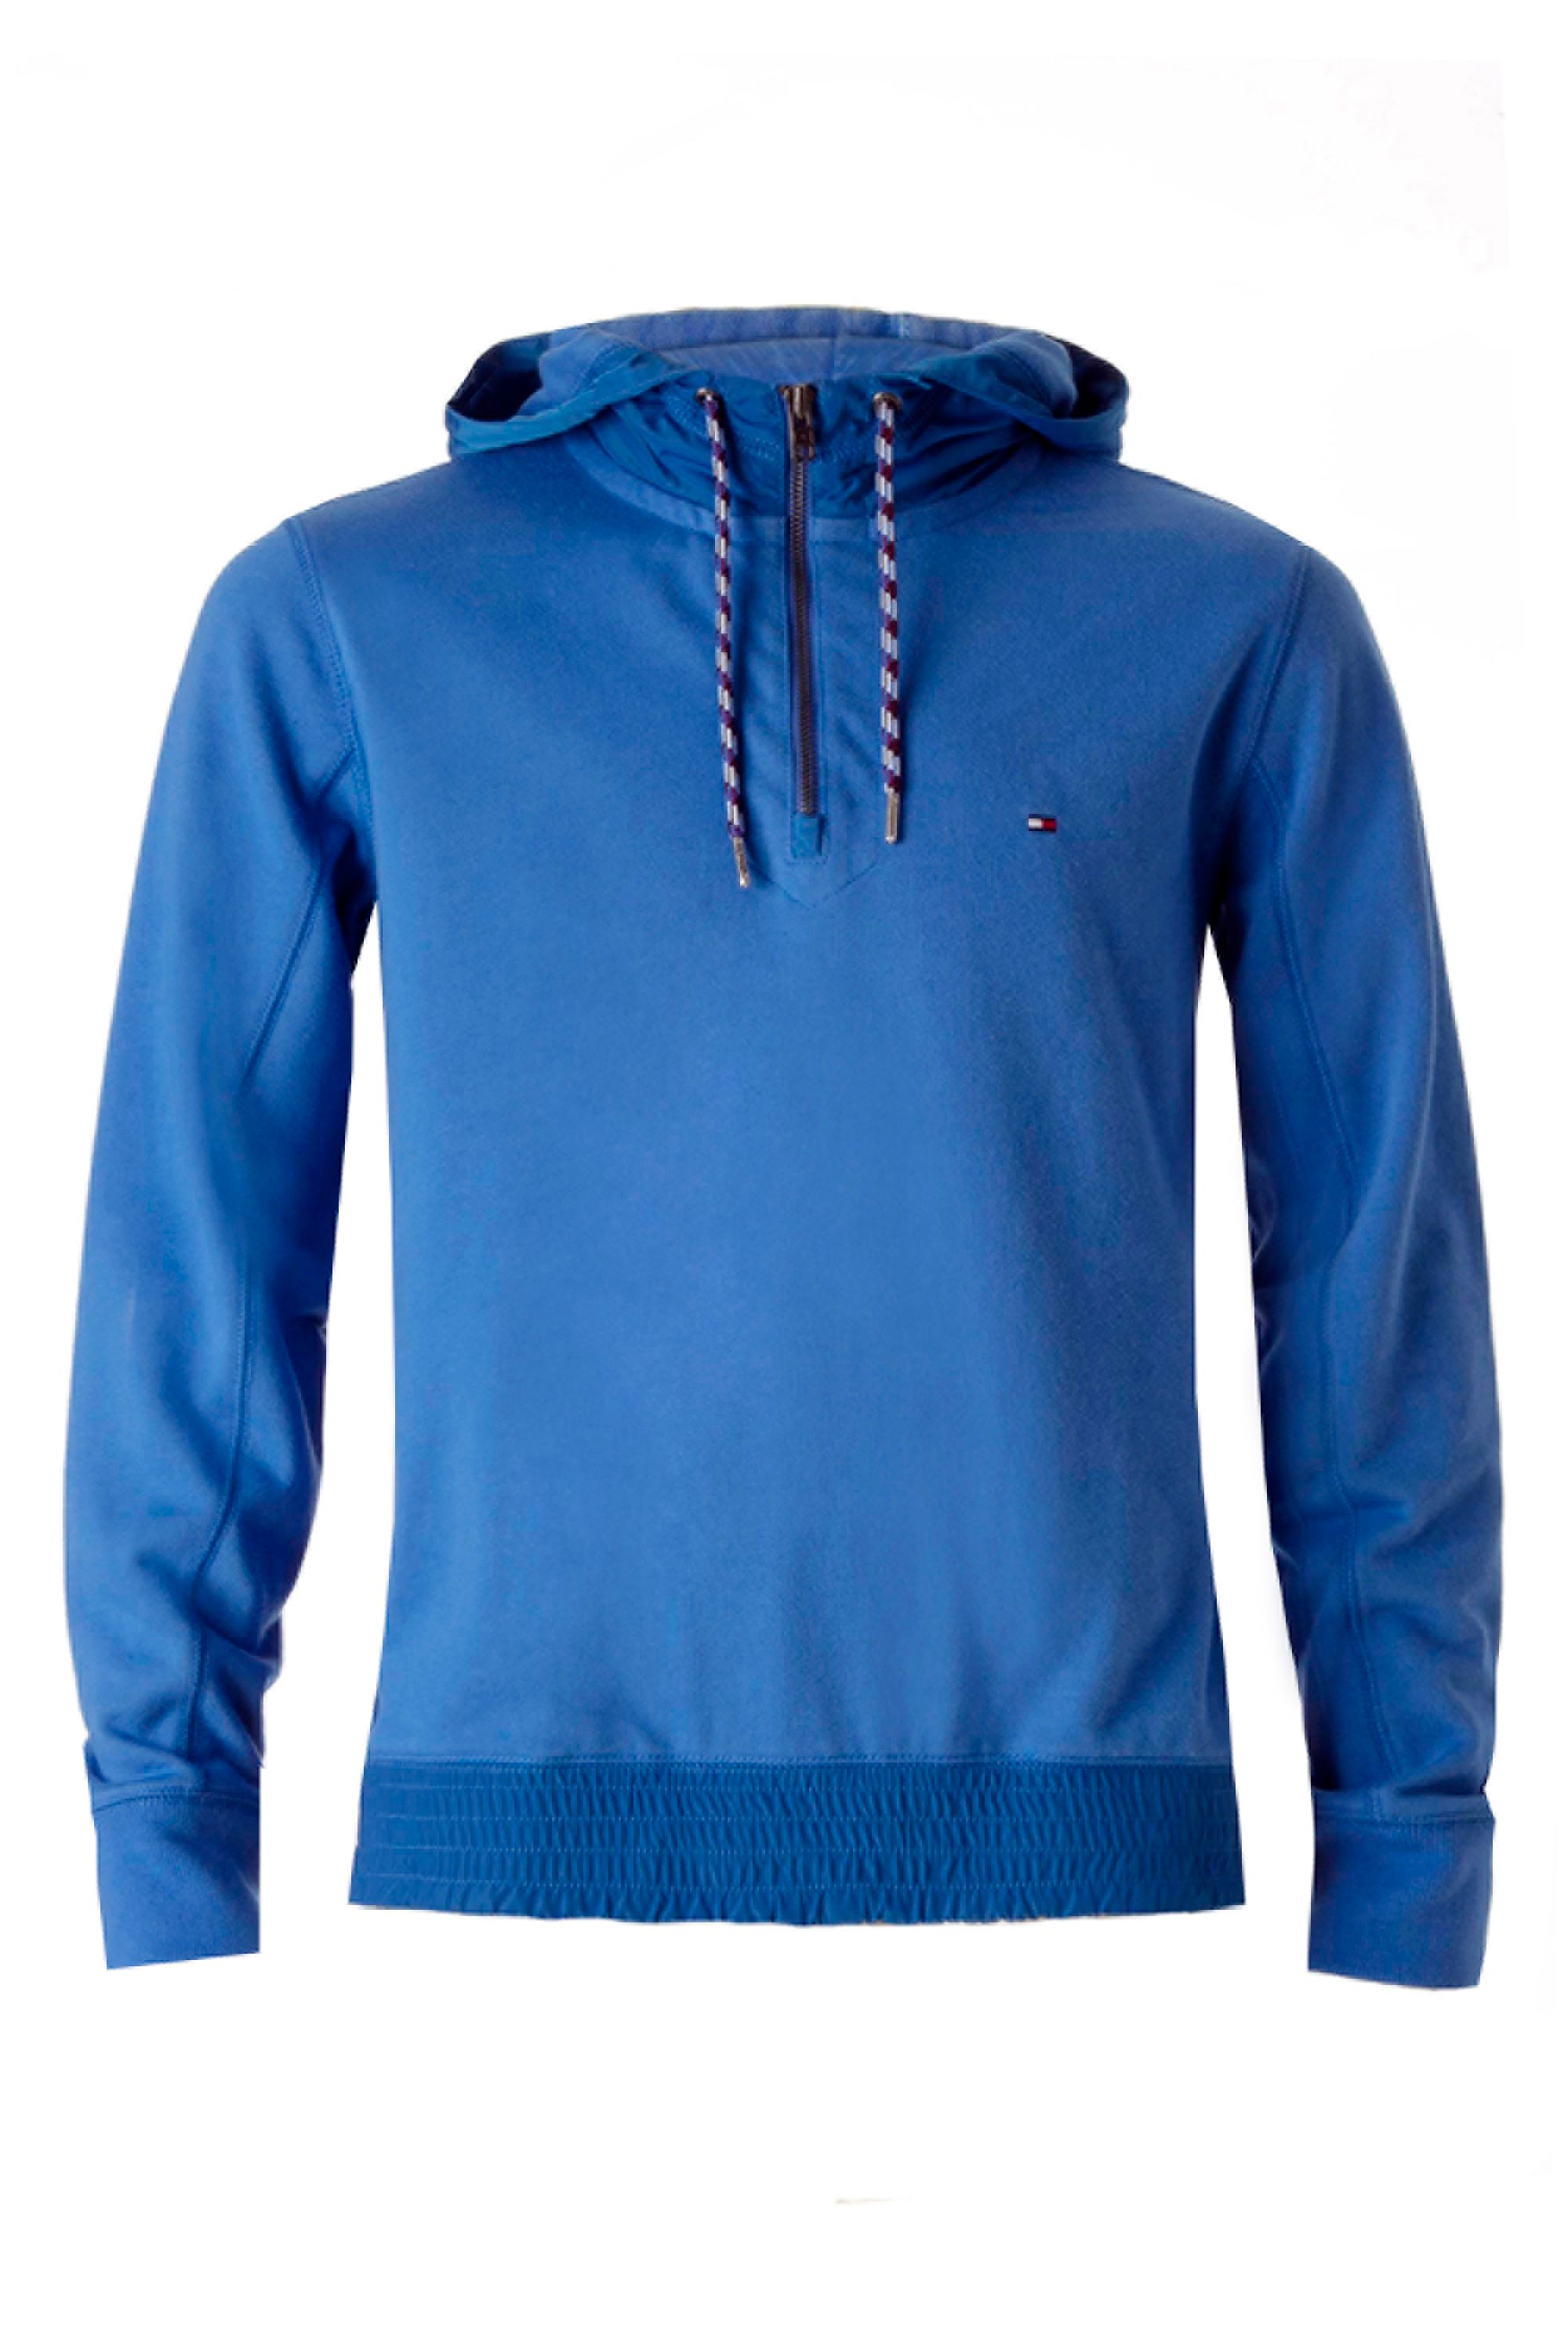 Pando hooded sweatshirt